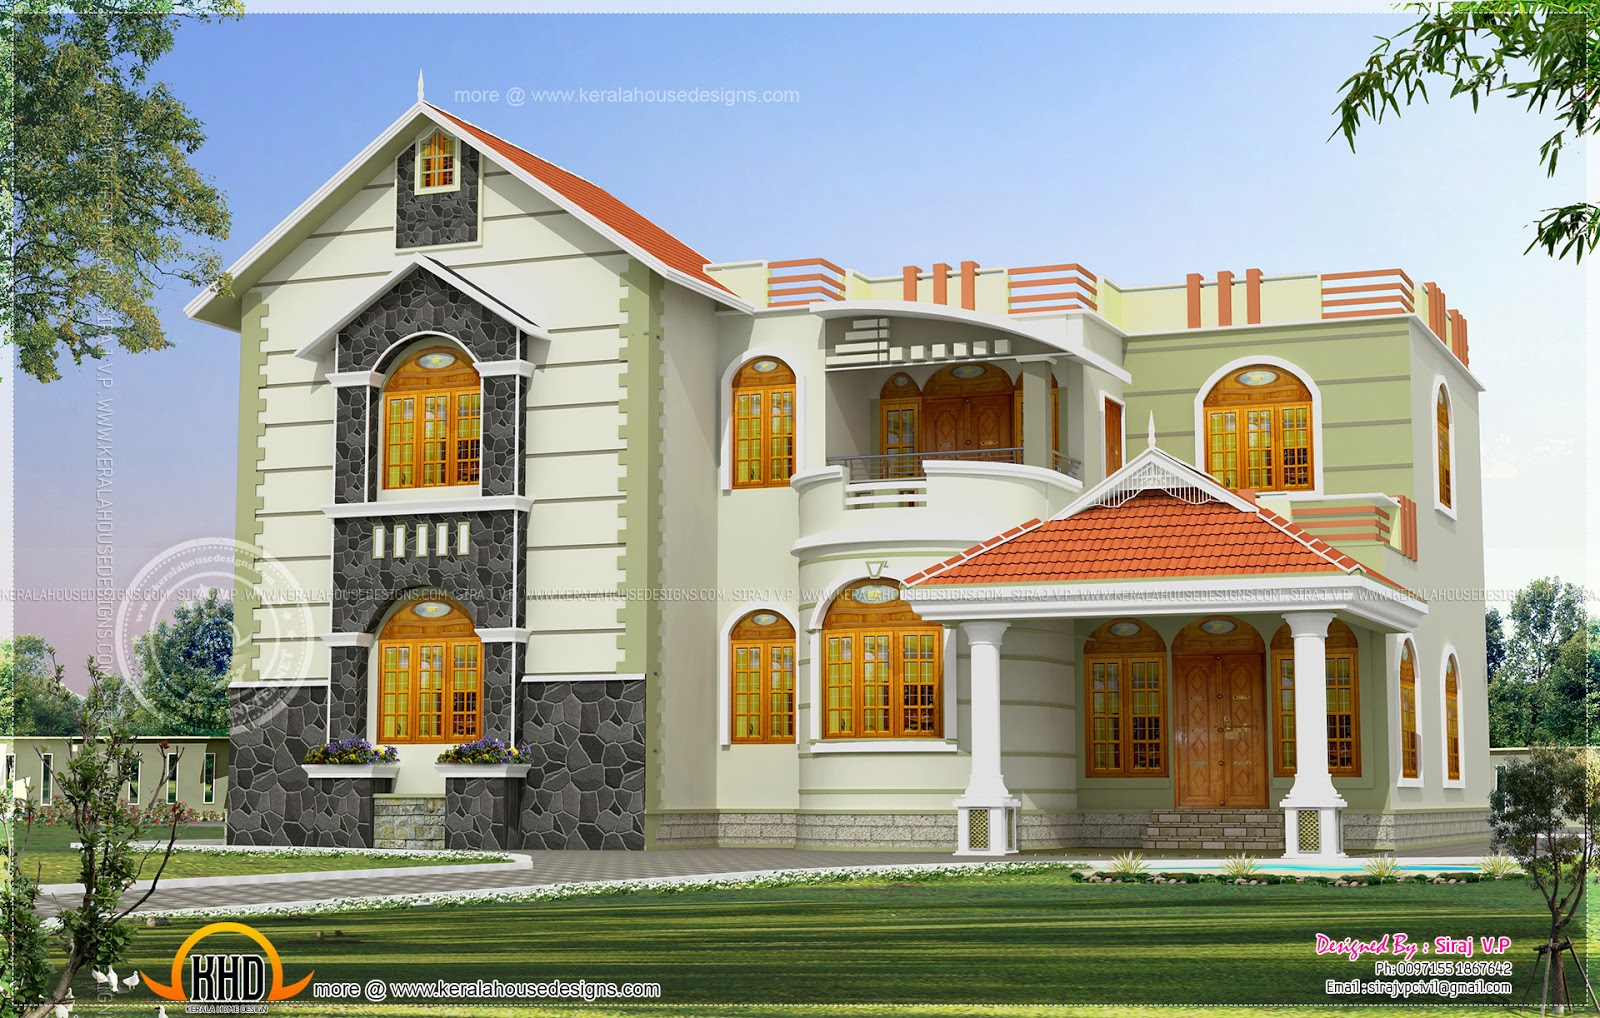 Home Outer Colour Design Of Color Combination For House Exterior India Joy Studio